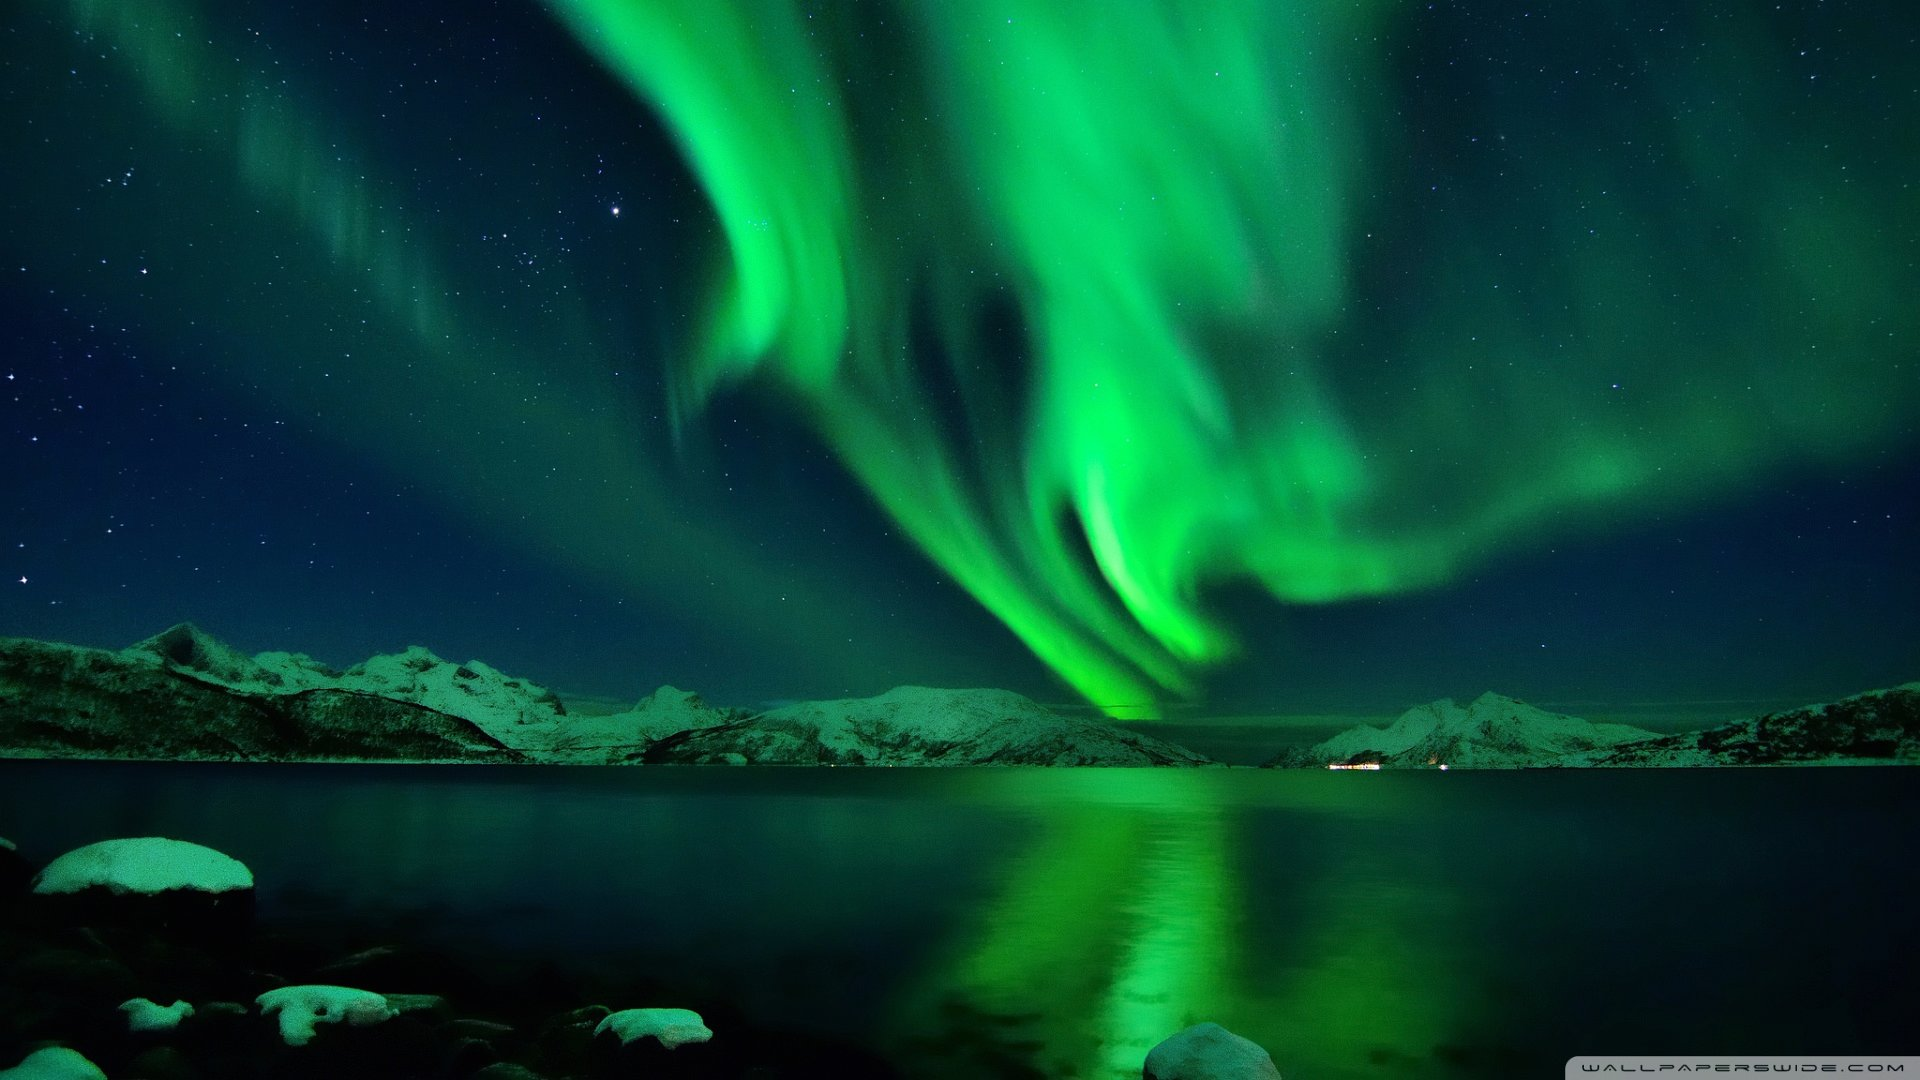 Wallpaper amazing boreal aurora green 1920 x 1080 full hd